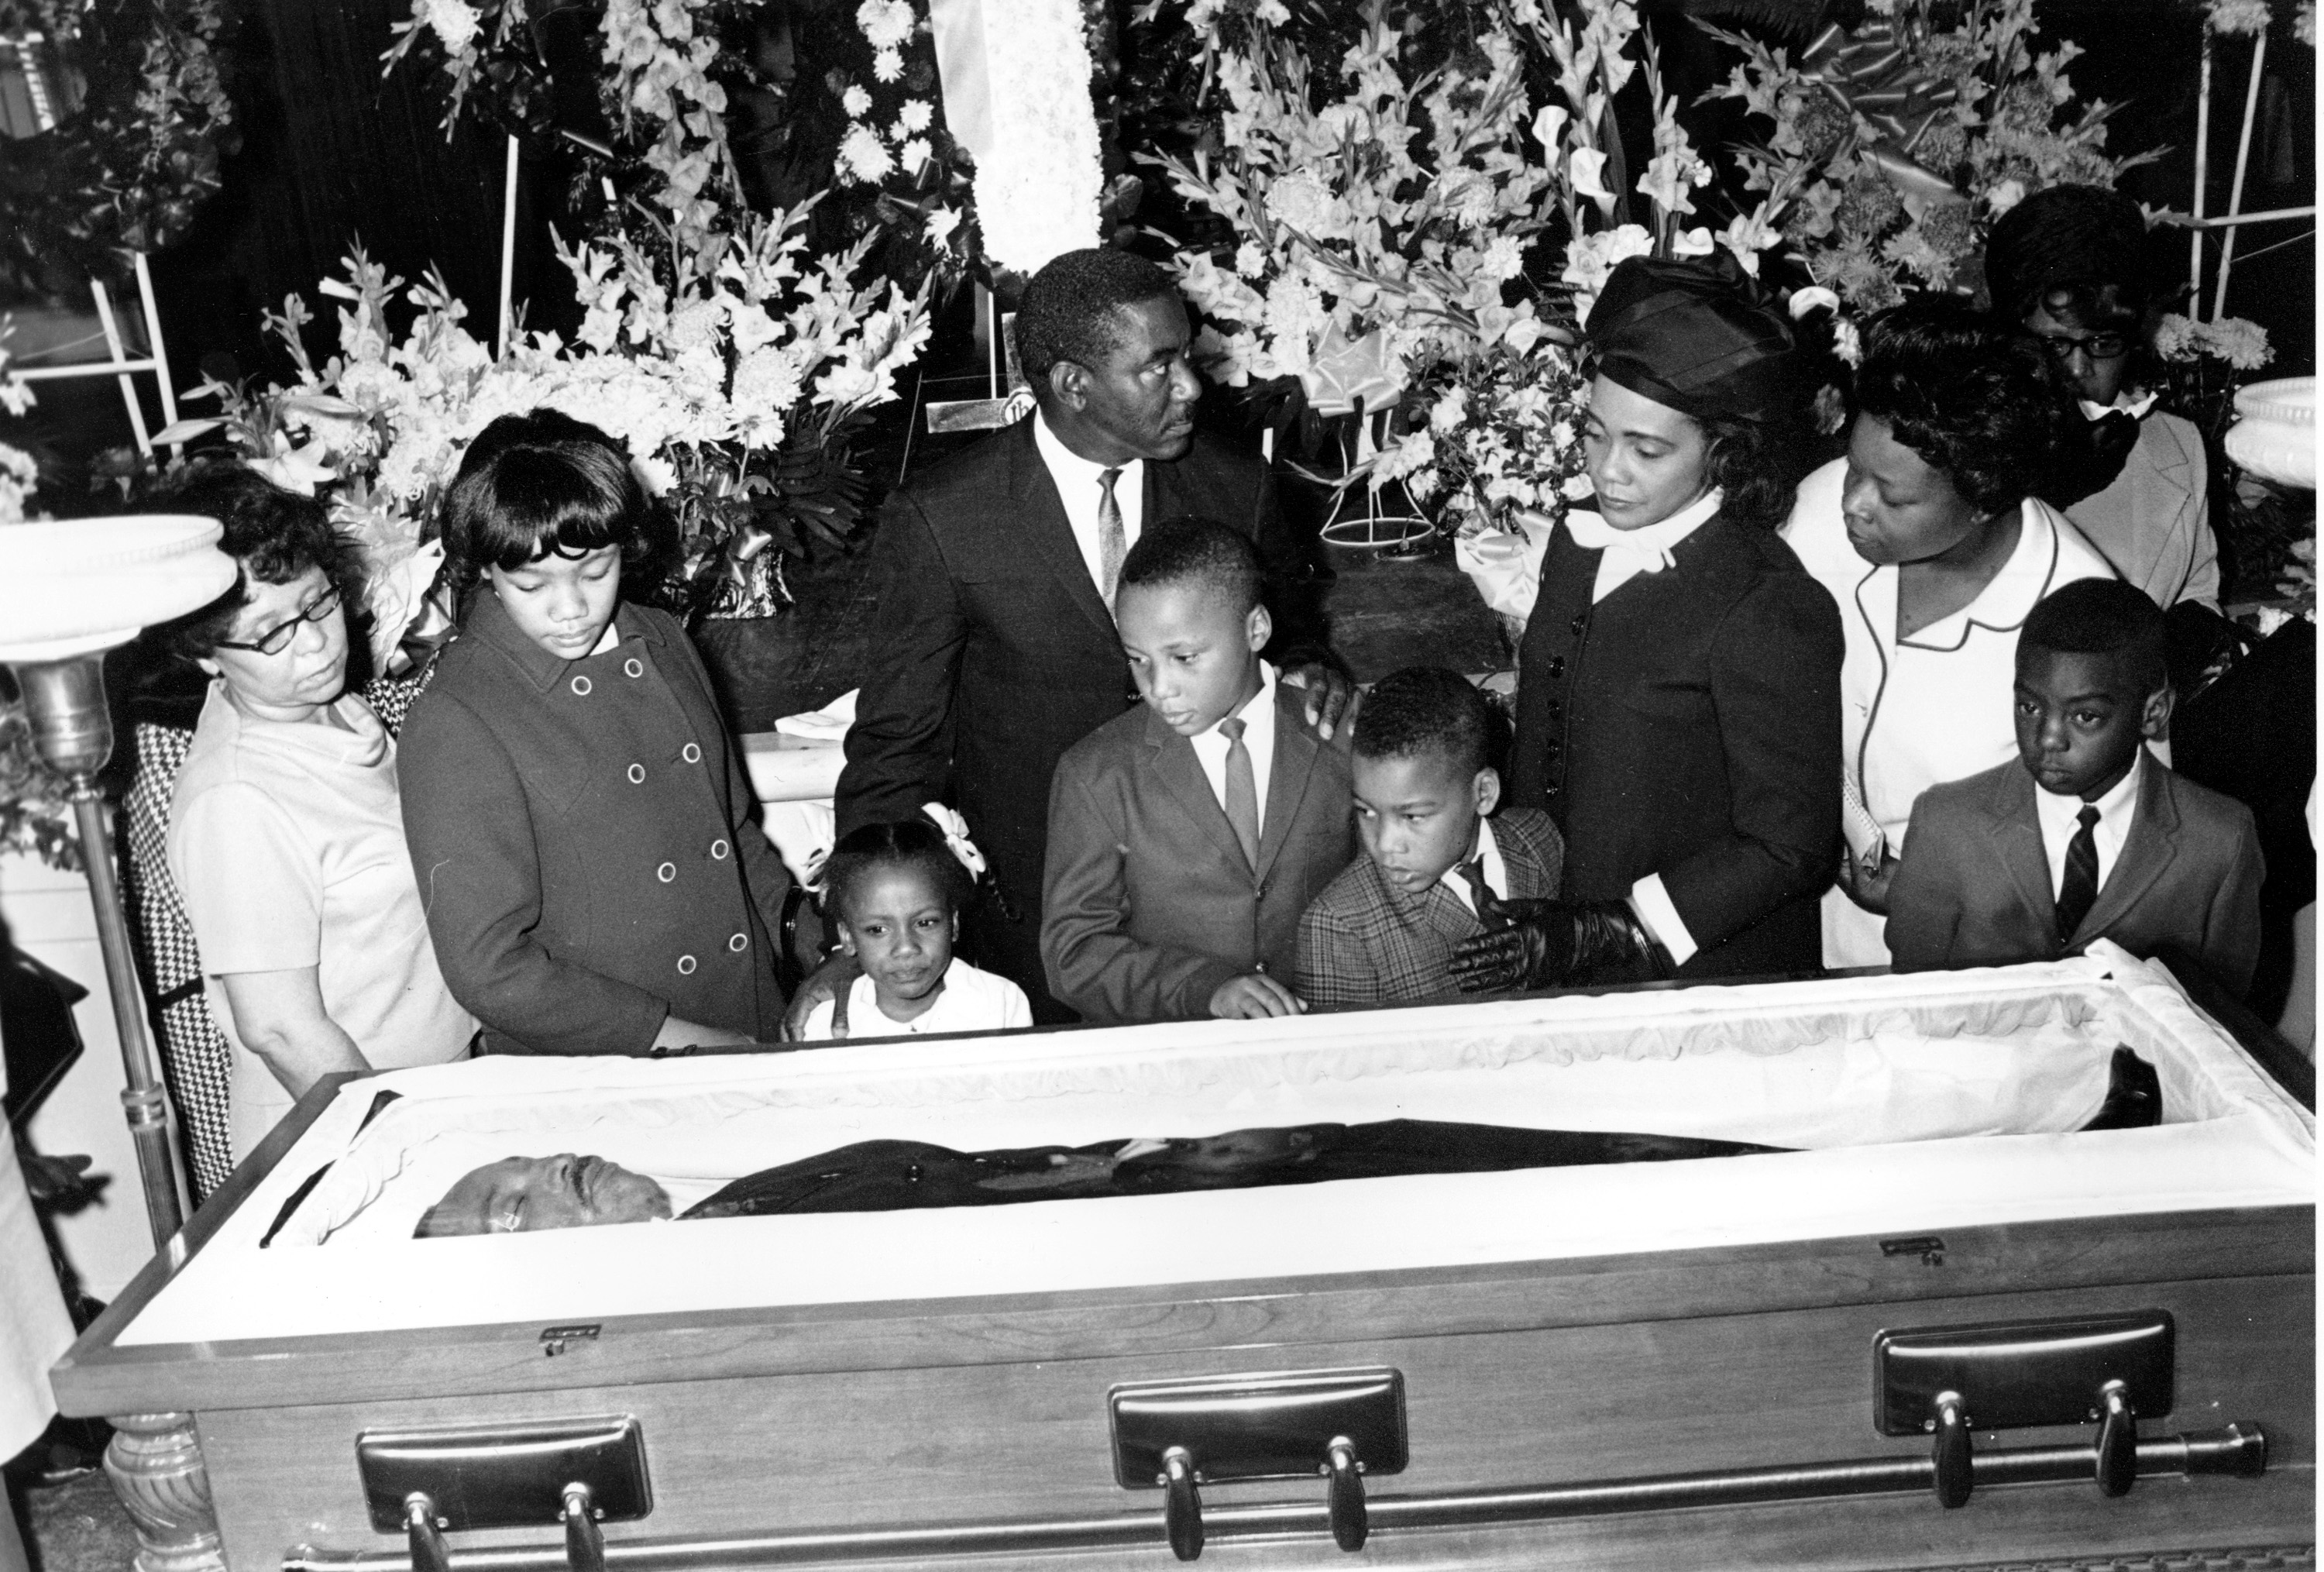 Coretta Scott King, wearing hat and gloves, and her four children view the body of her husband, slain civil rights activist leader Dr. Martin Luther King Jr., in Atlanta, Ga., on April 7, 1968. The children are, from left, Yolanda, 12, Bernice, 5, Martin III, 11, and Dexter 7. Dr. King was assassinated in Memphis, Tenn. on April 4. Other members in the photograph are not identified. (AP Photo)